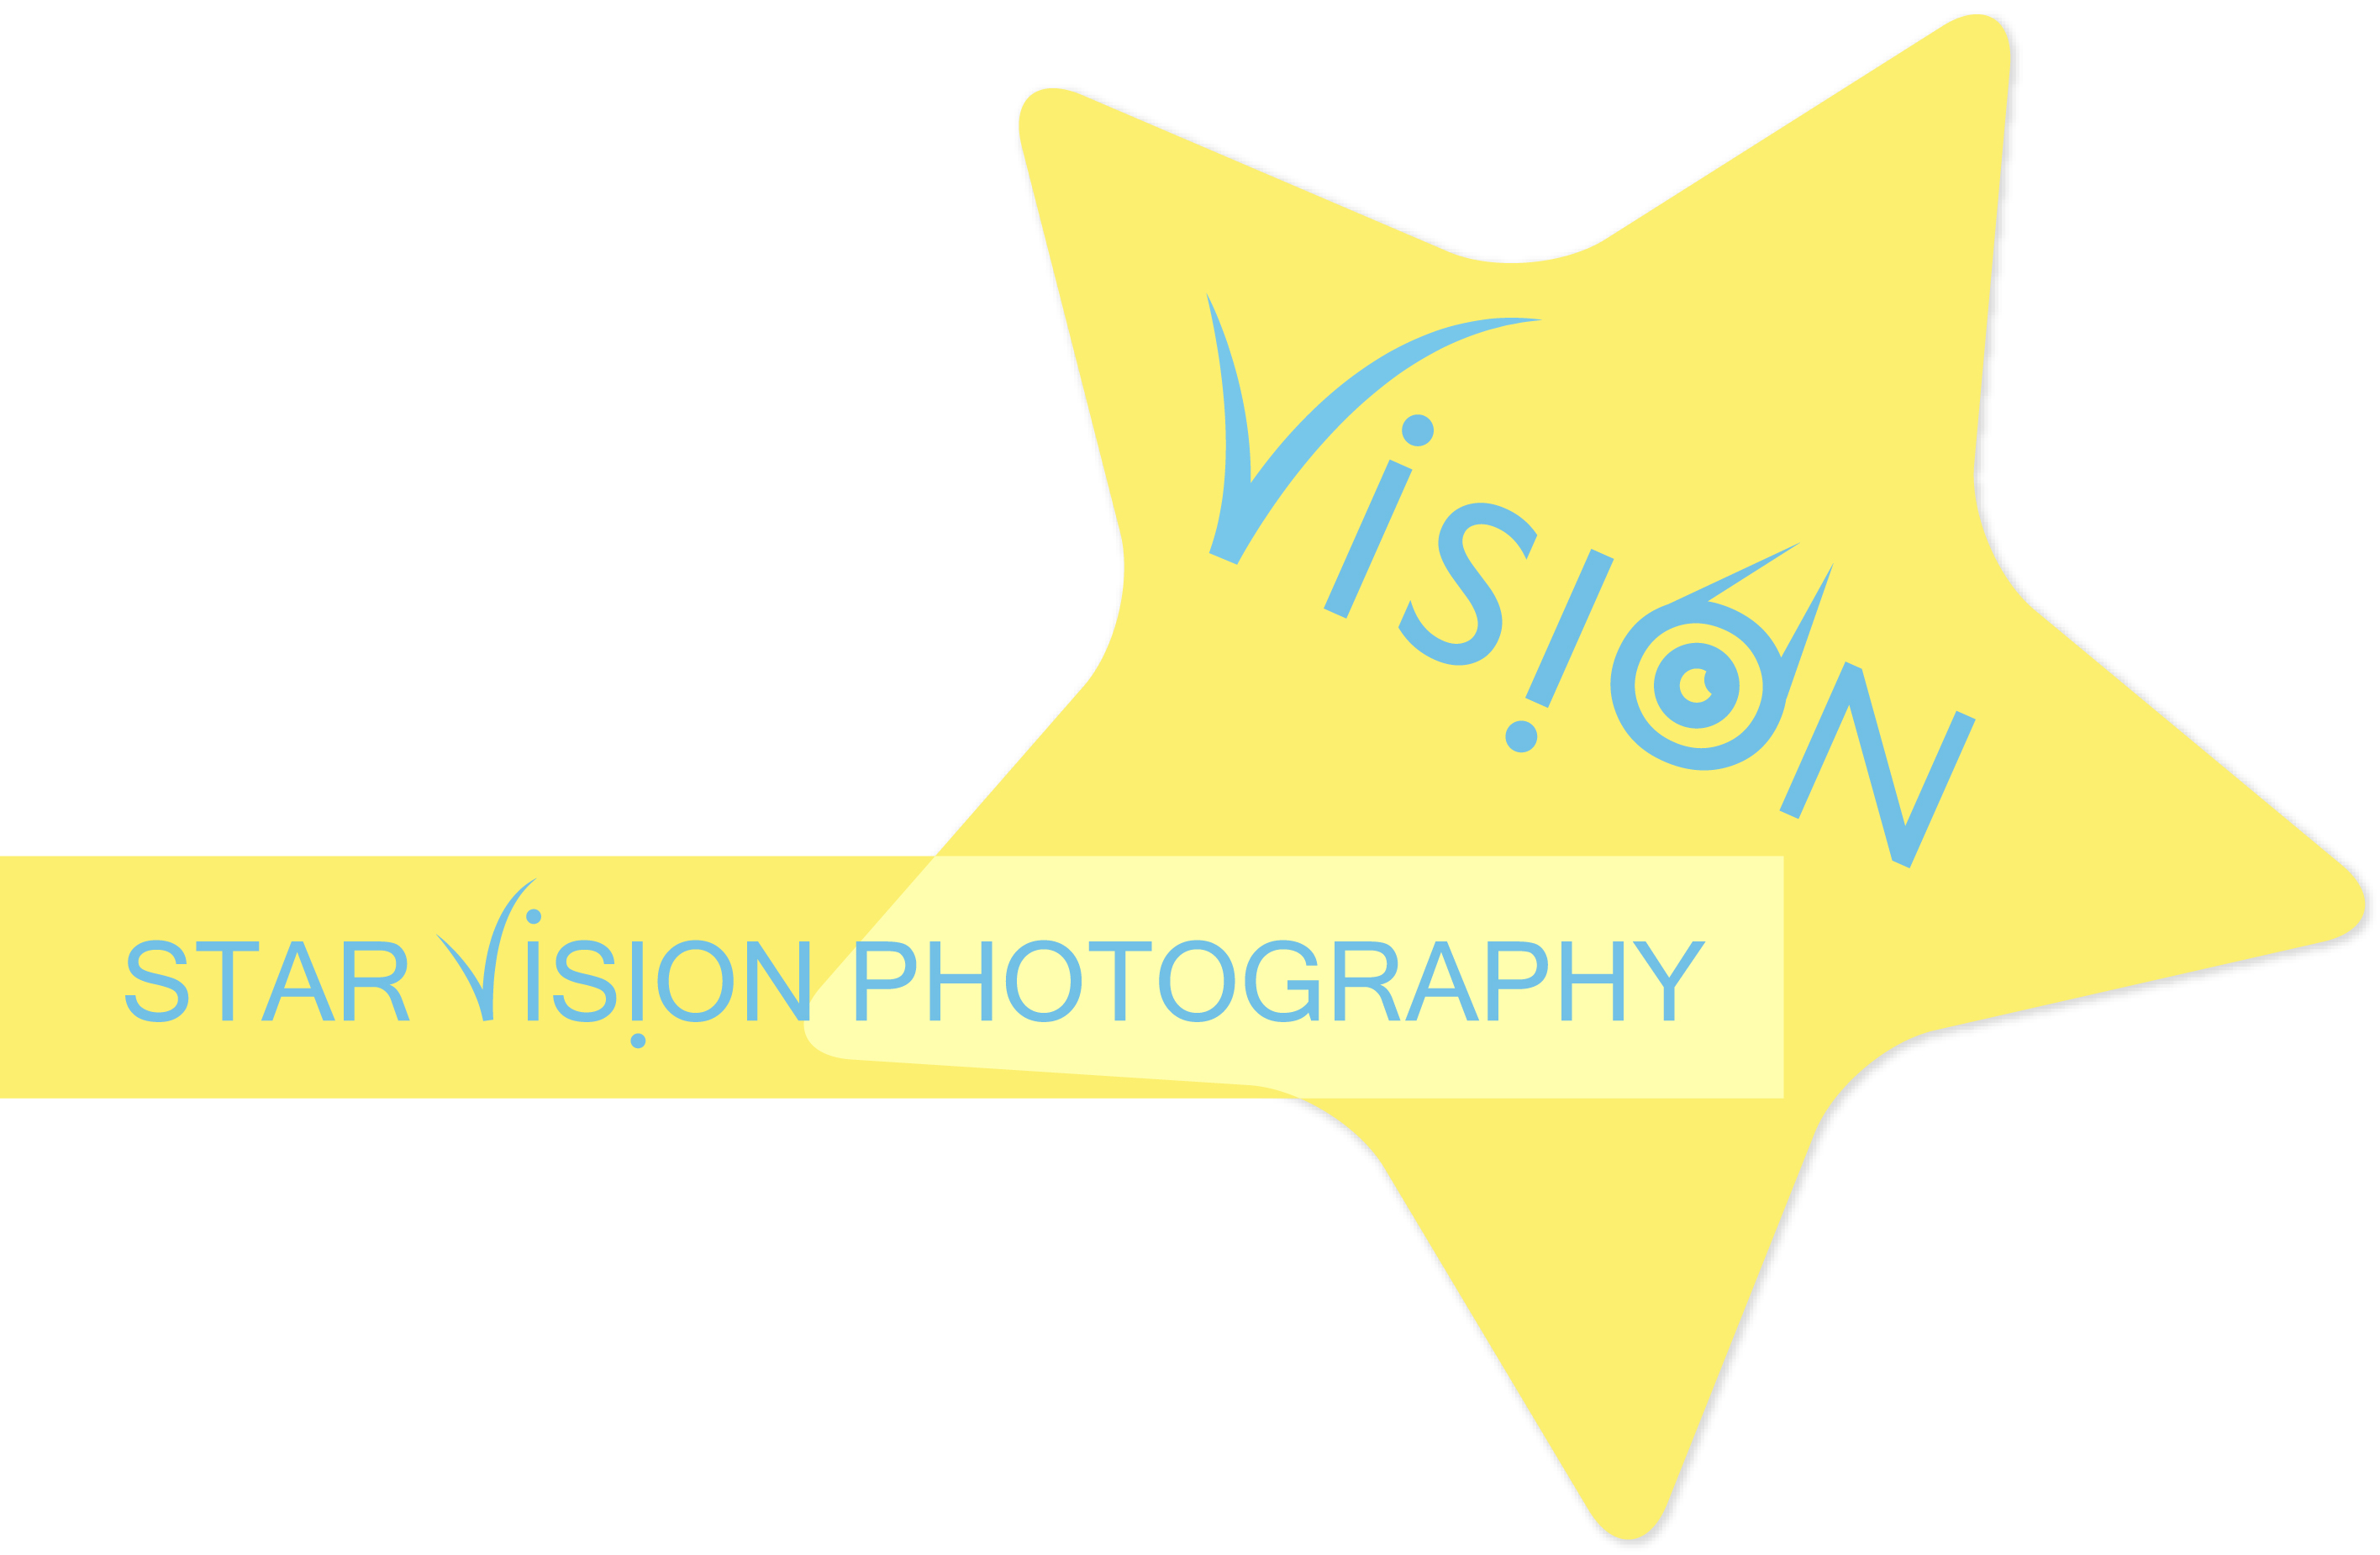 Star Vision Photography